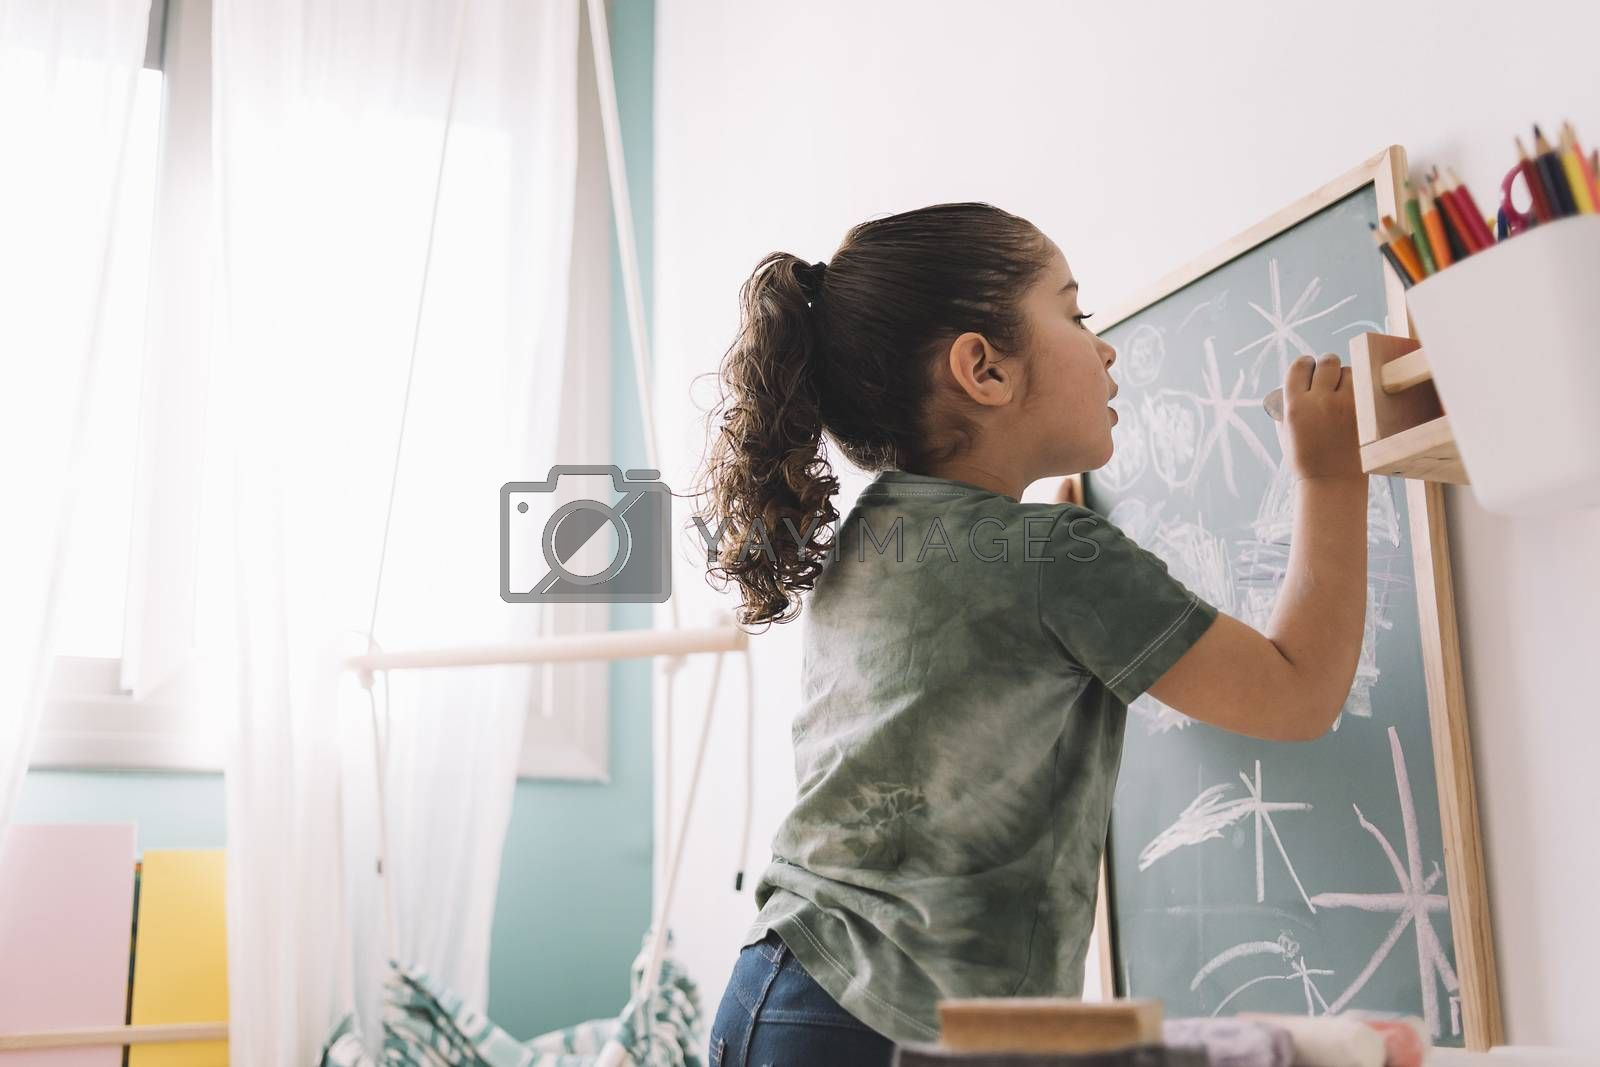 little girl drawing concentrated on the chalkboard by raulmellado